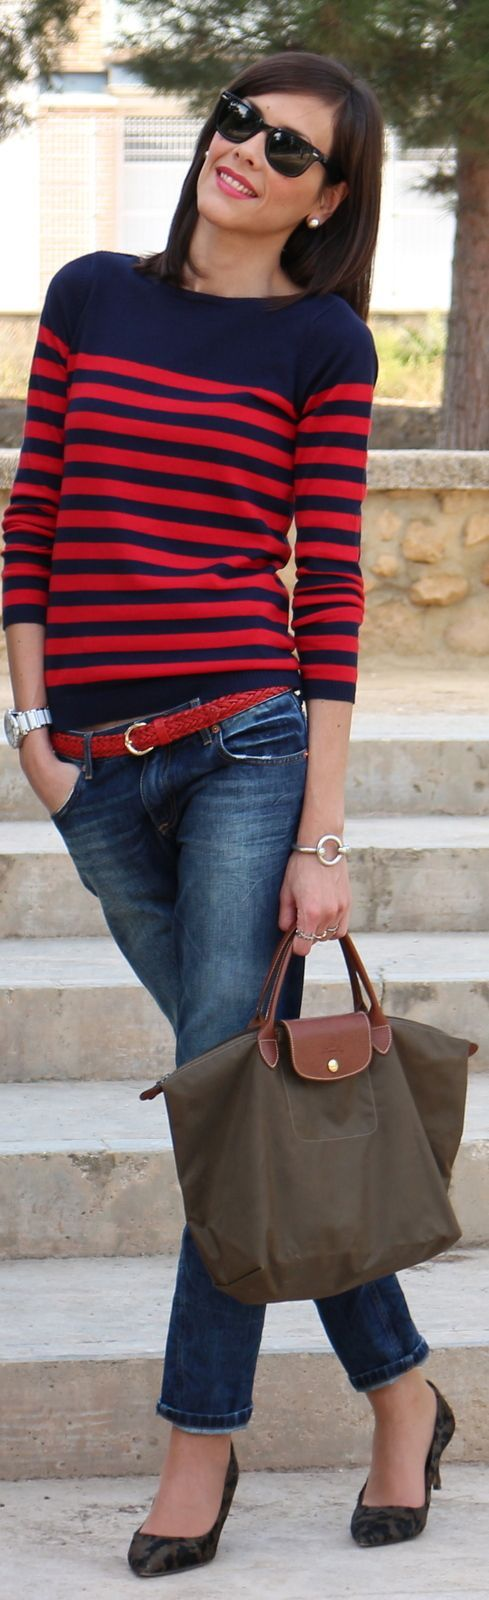 Best 25  Striped jeans ideas on Pinterest | Stripe pants, Gothic ...